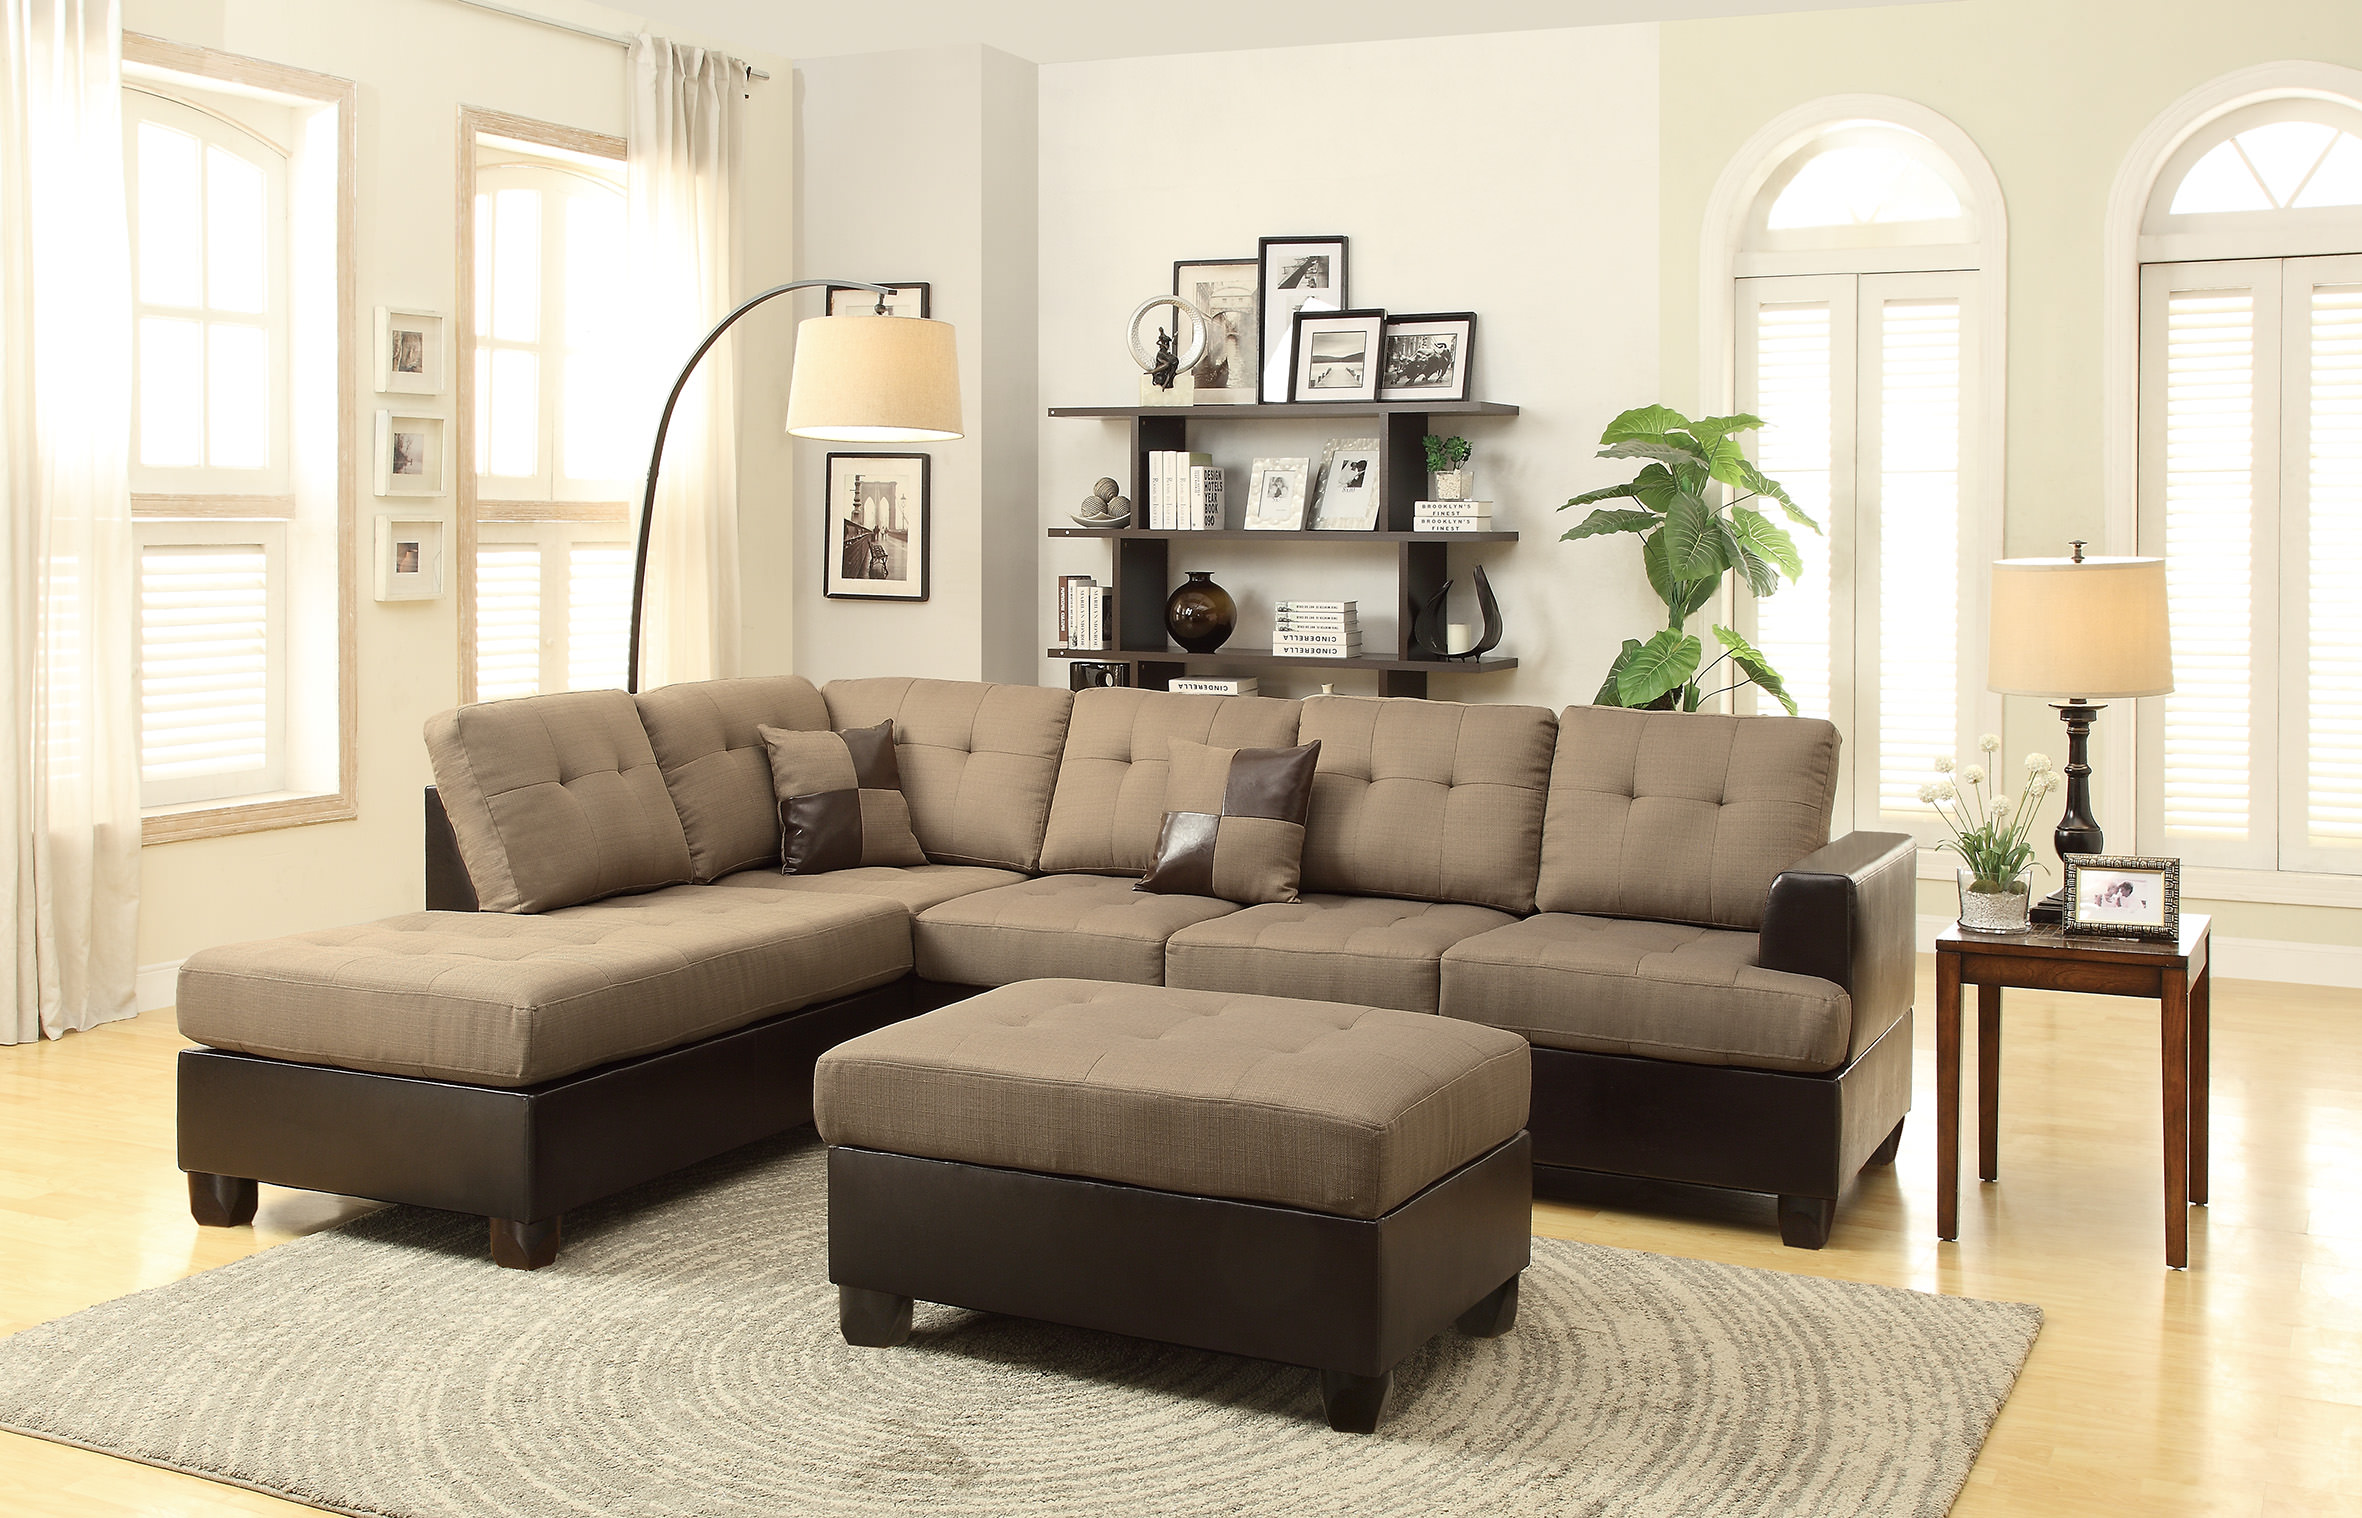 F7603 tan 2 pcs sectional sofa set by poundex for L shaped couch name